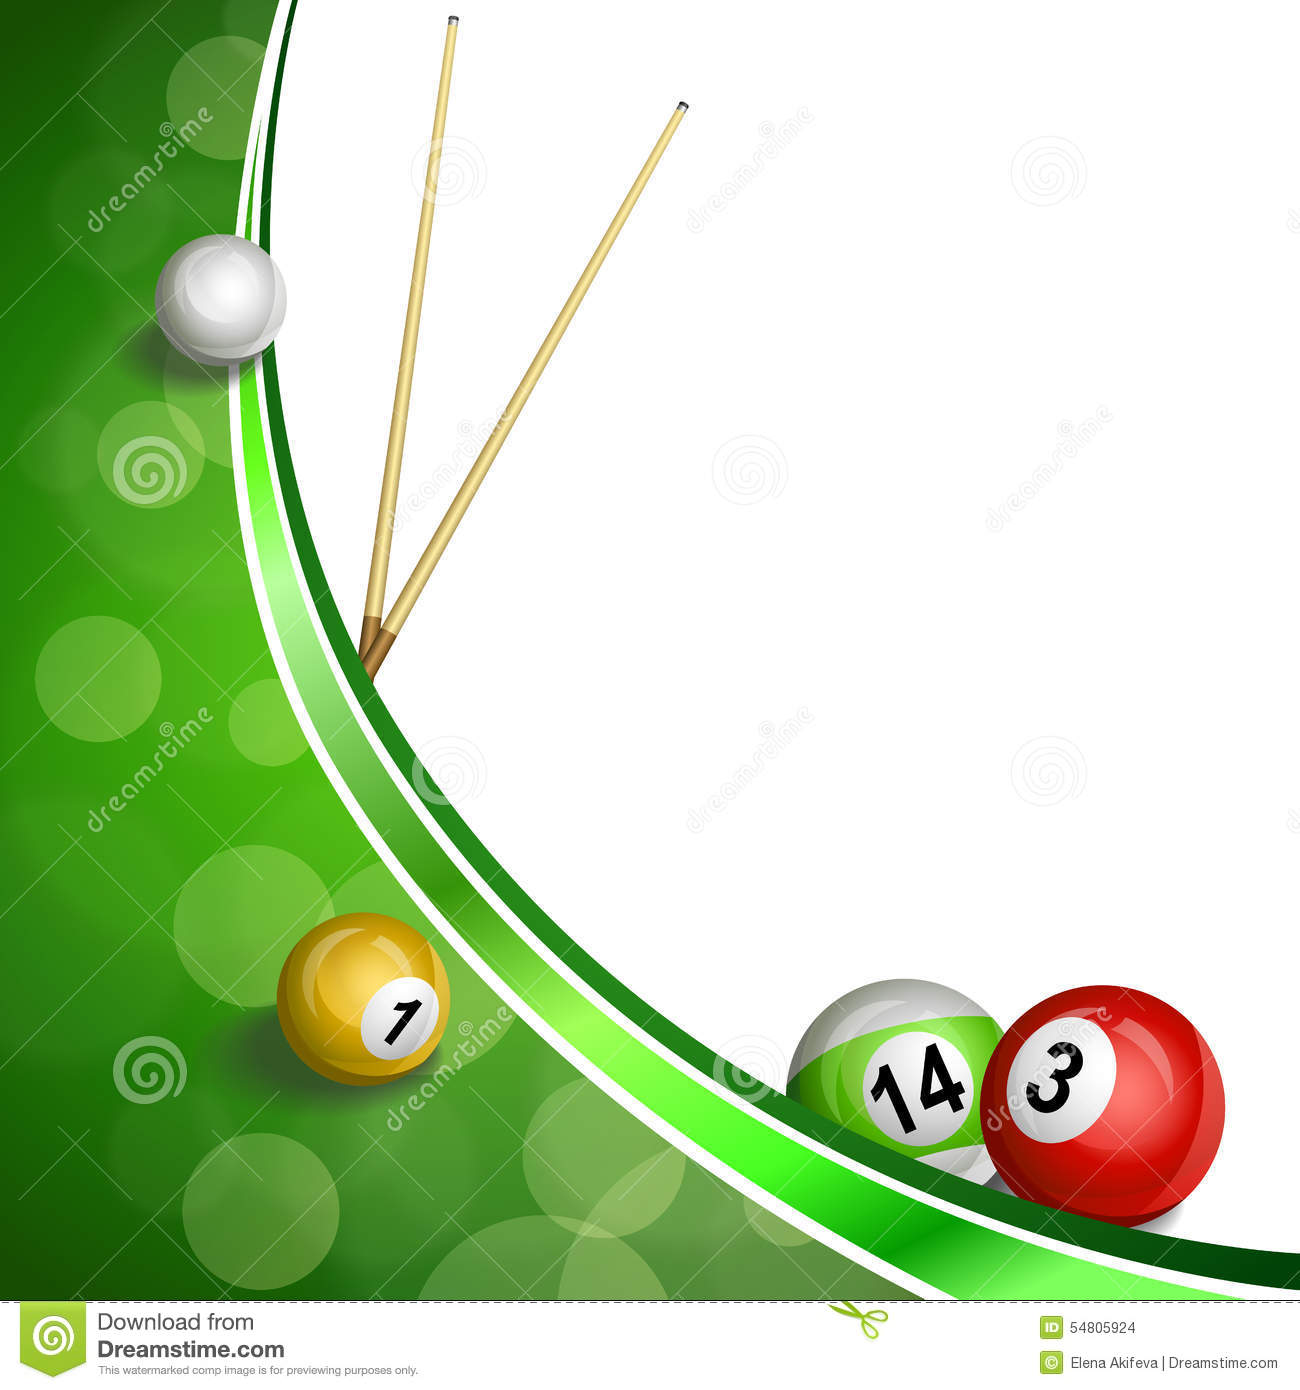 Background abstract green billiard pool cue ball illustration